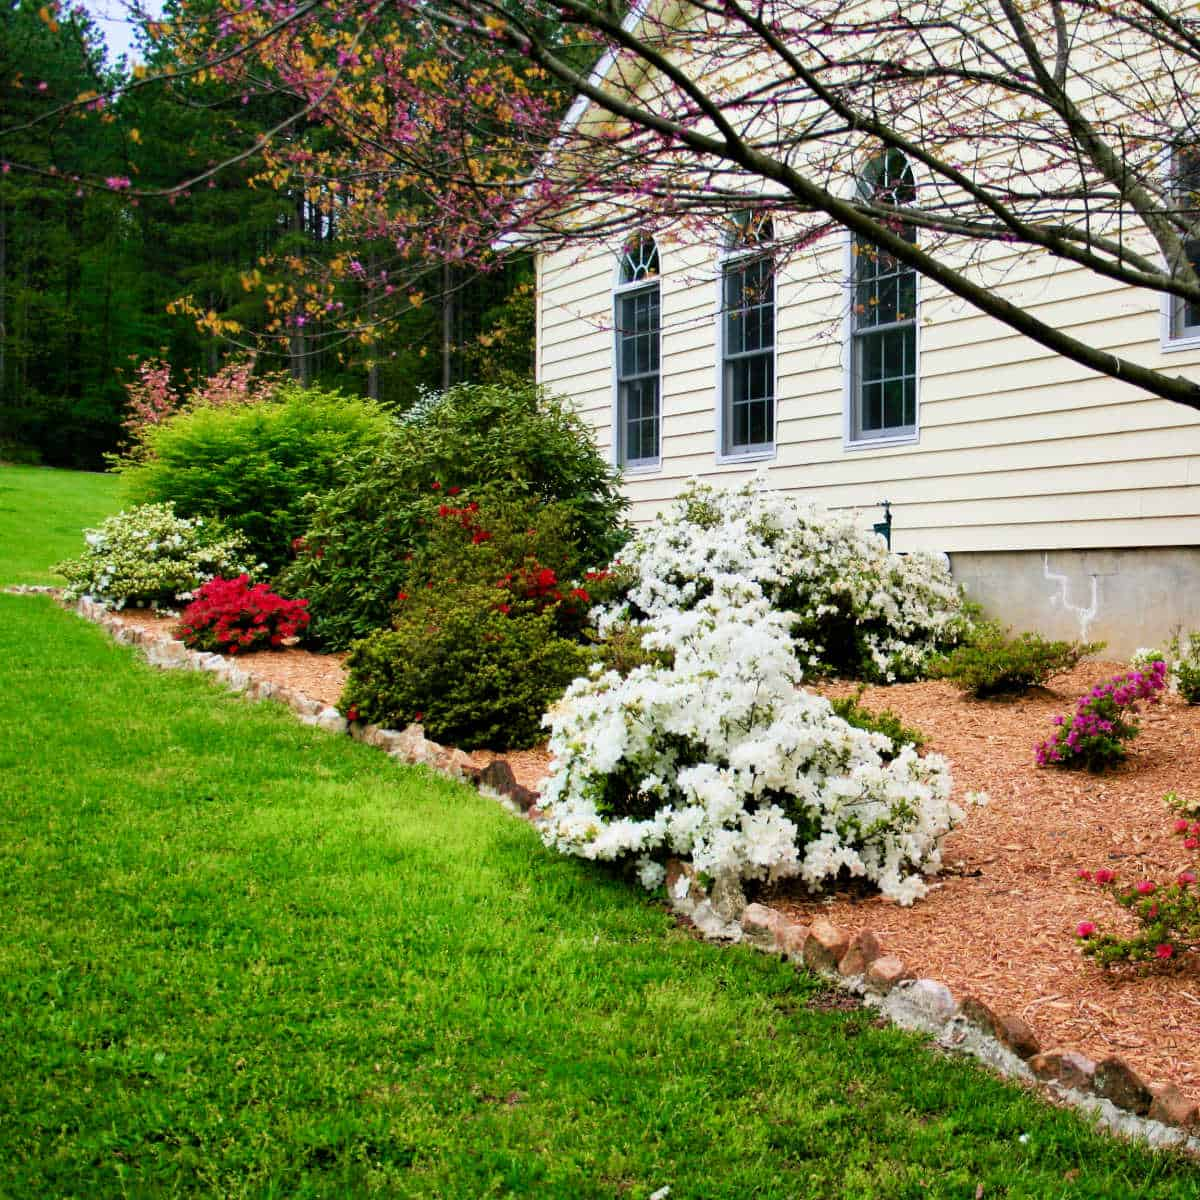 foundation plantings showing trees and shrubs to be pruned